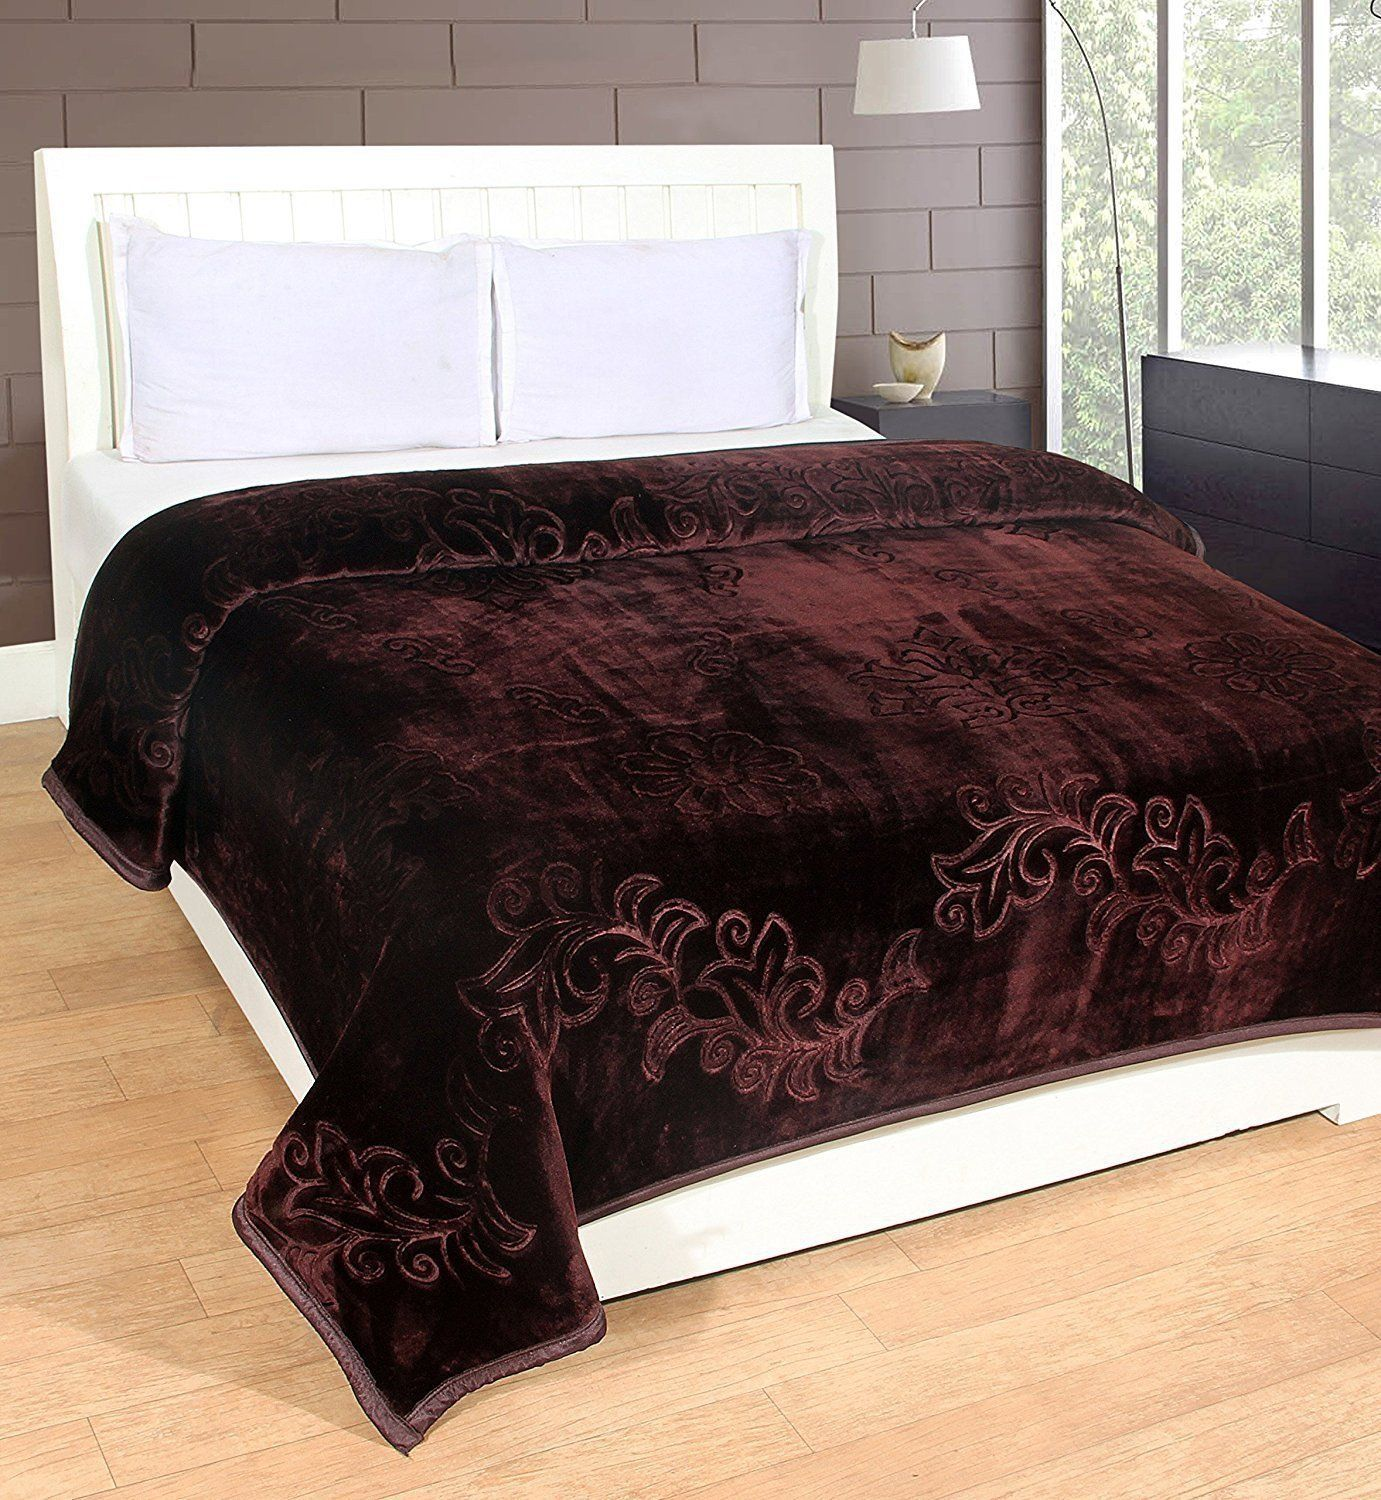 HOMECRUST Blankets Solid Colour Ultra Soft Floral Single